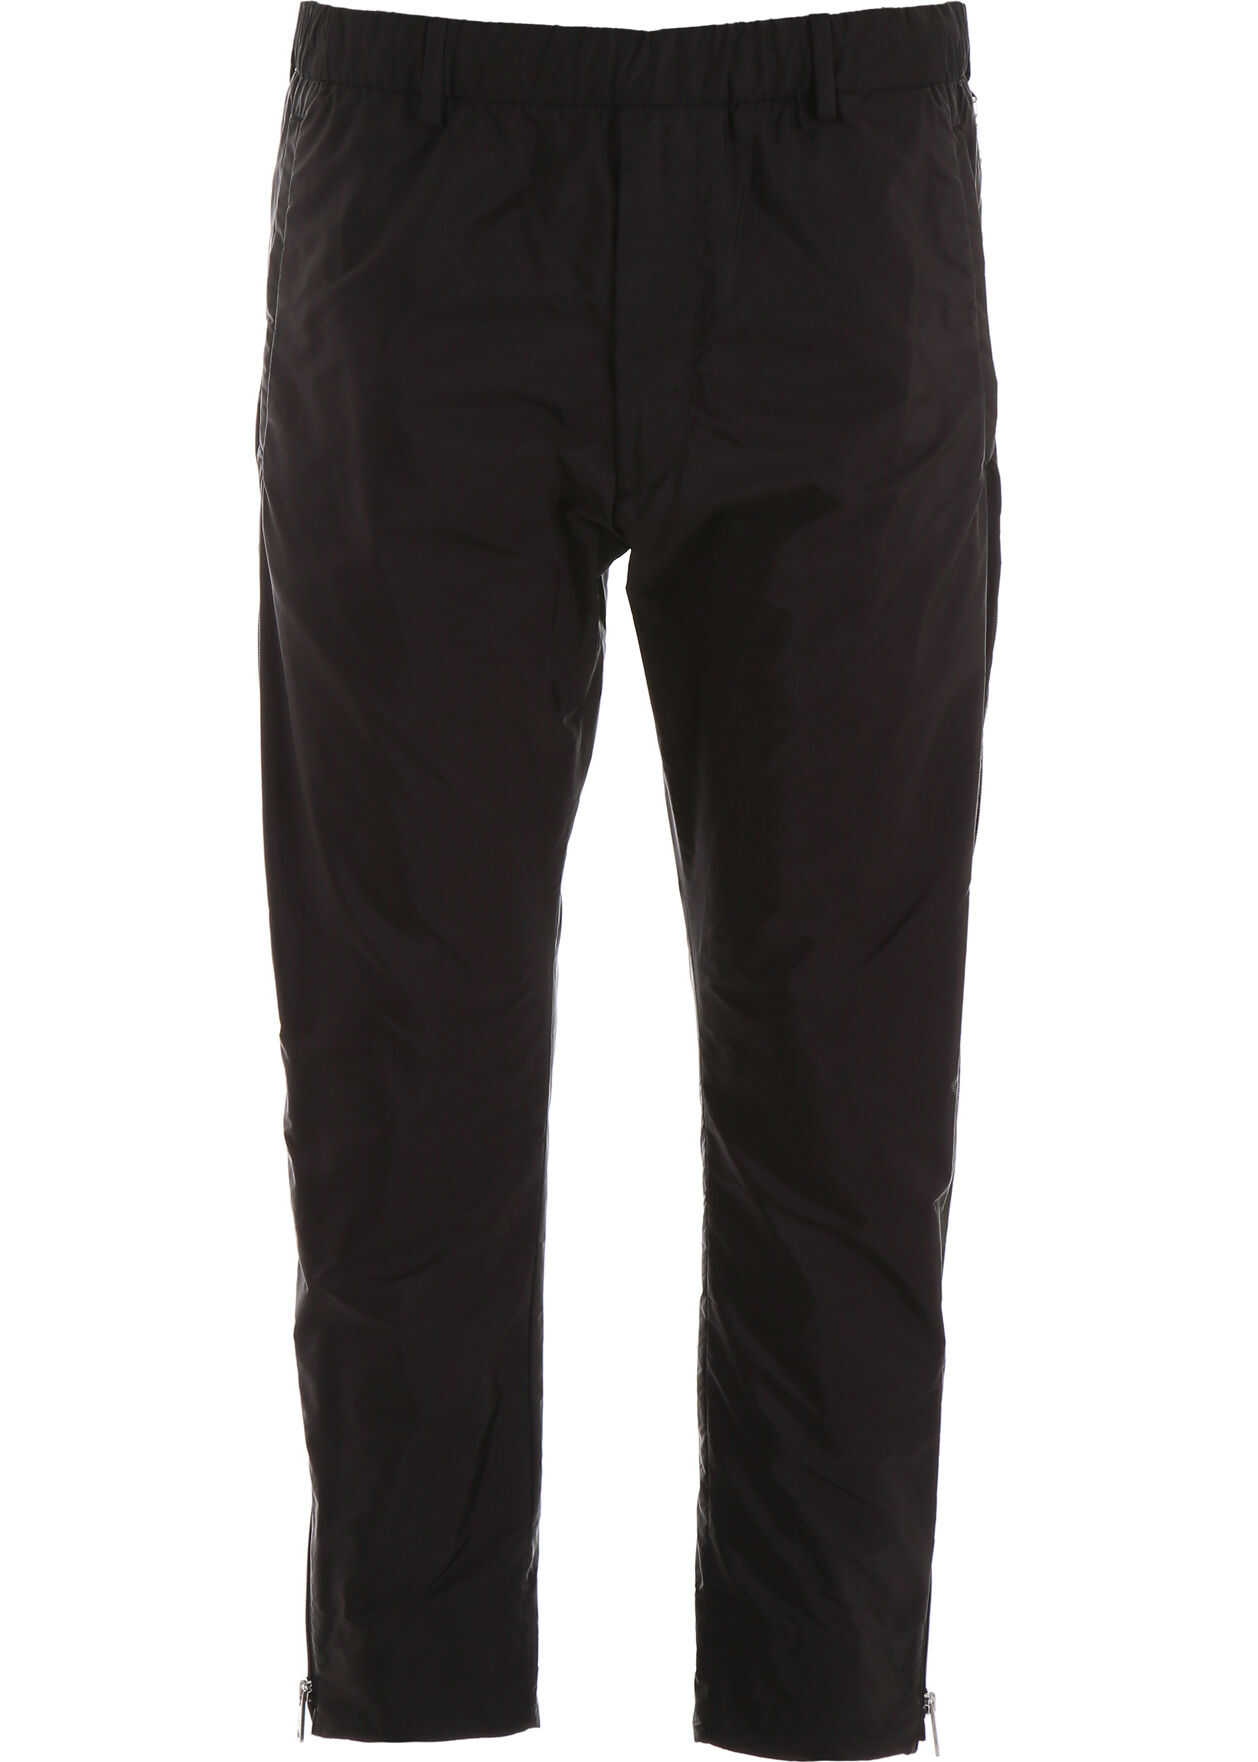 Prada Nylon Trousers NERO